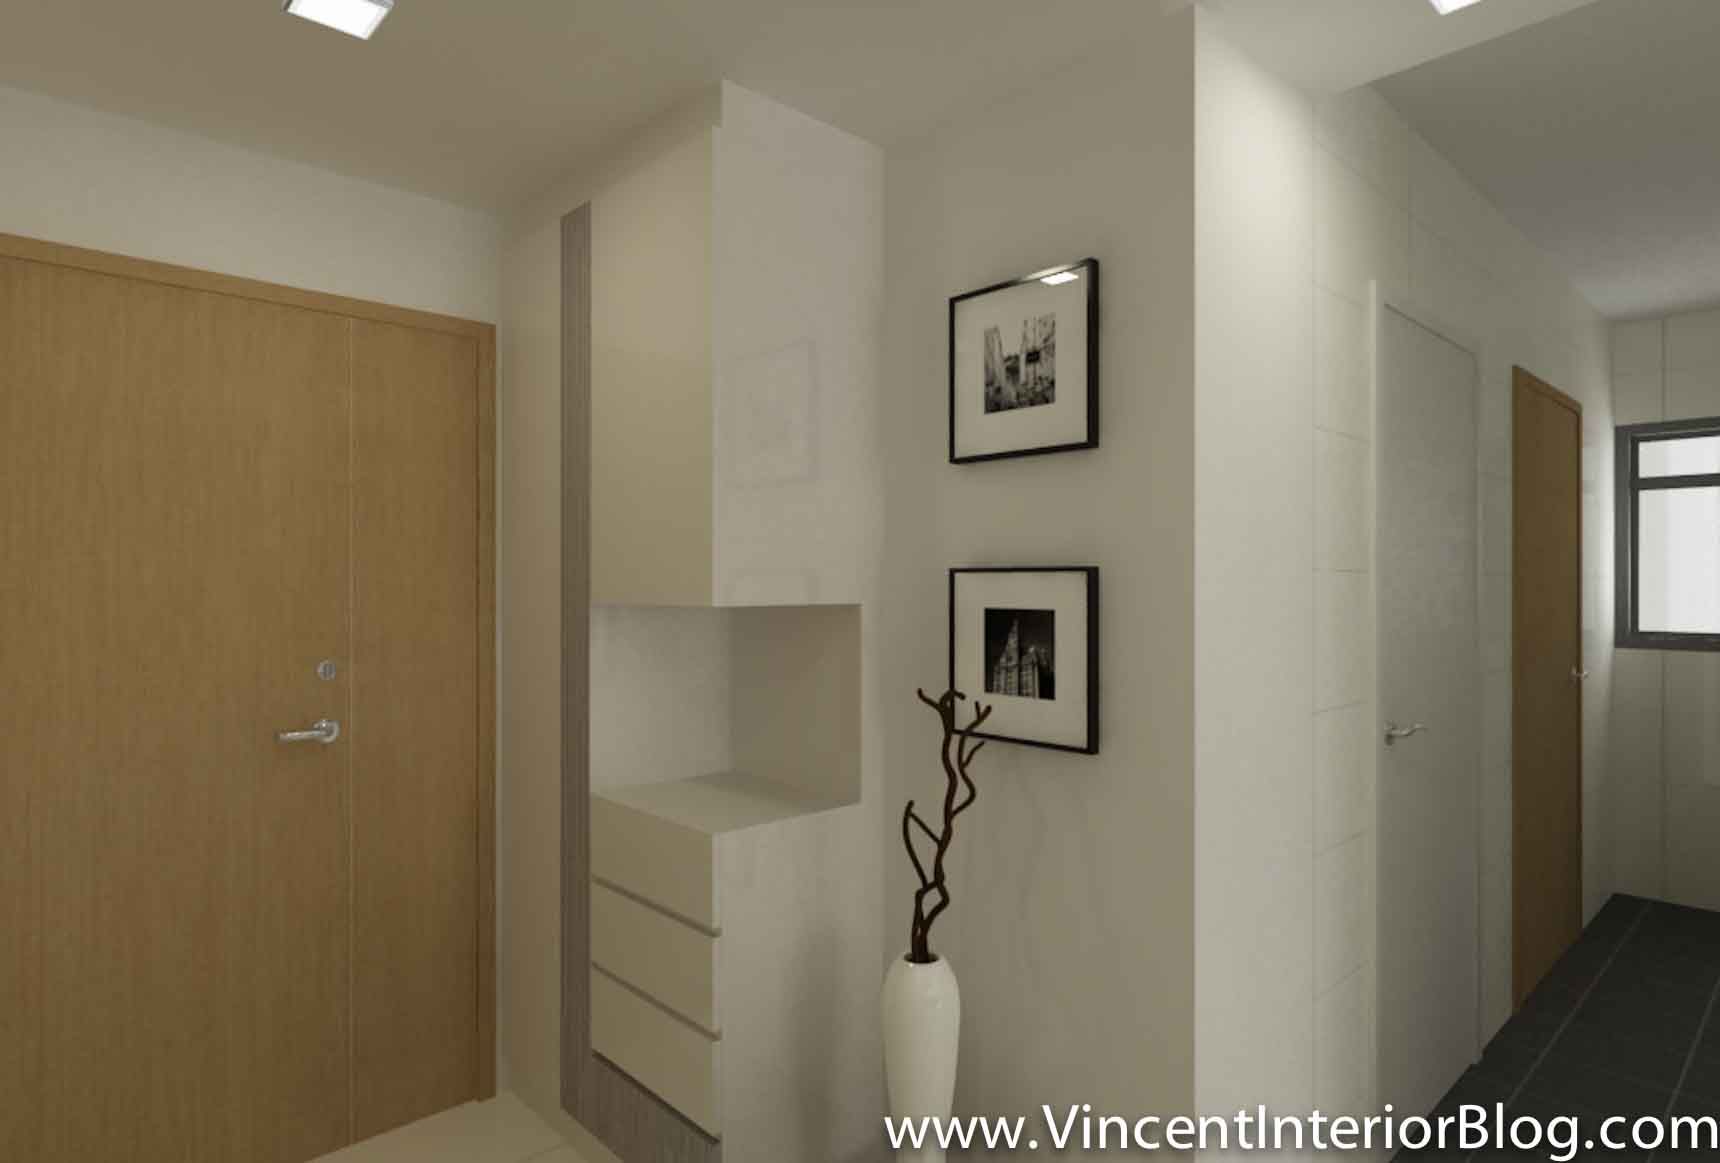 Bto 3 room hdb renovation by interior designer ben ng for 3 bedroom flat interior designs